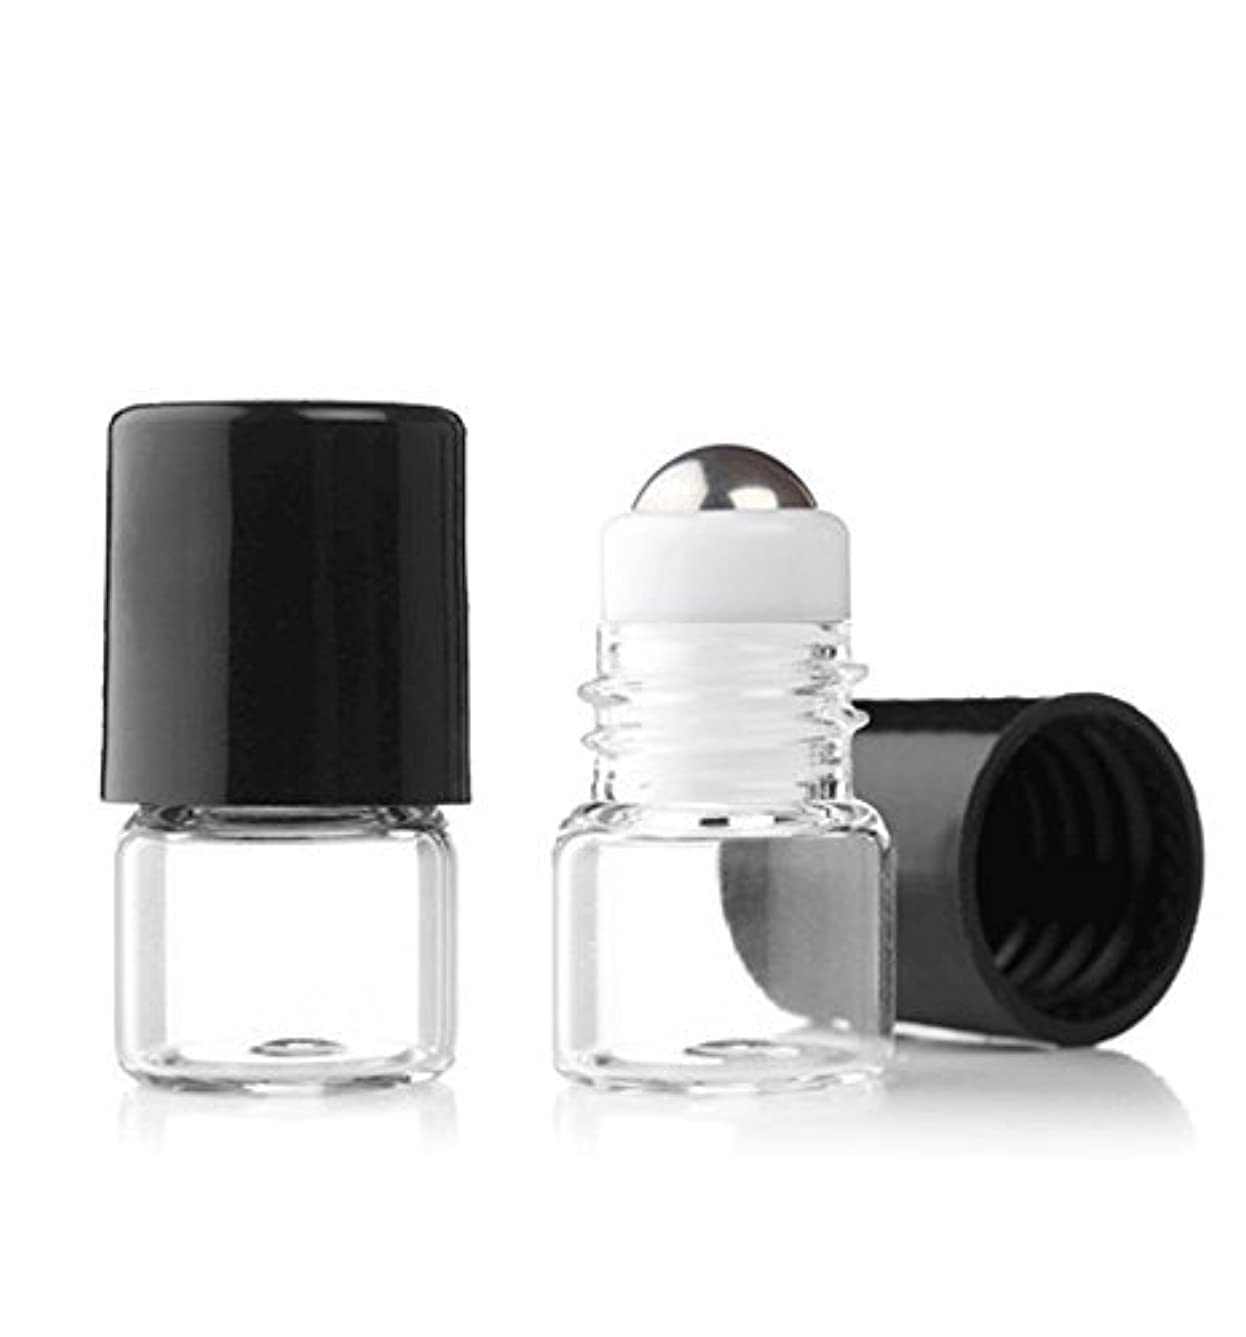 省略する暴君反響するGrand Parfums Empty 1ml Micro Mini Rollon Dram Glass Bottles with Metal Roller Balls - Refillable Aromatherapy...